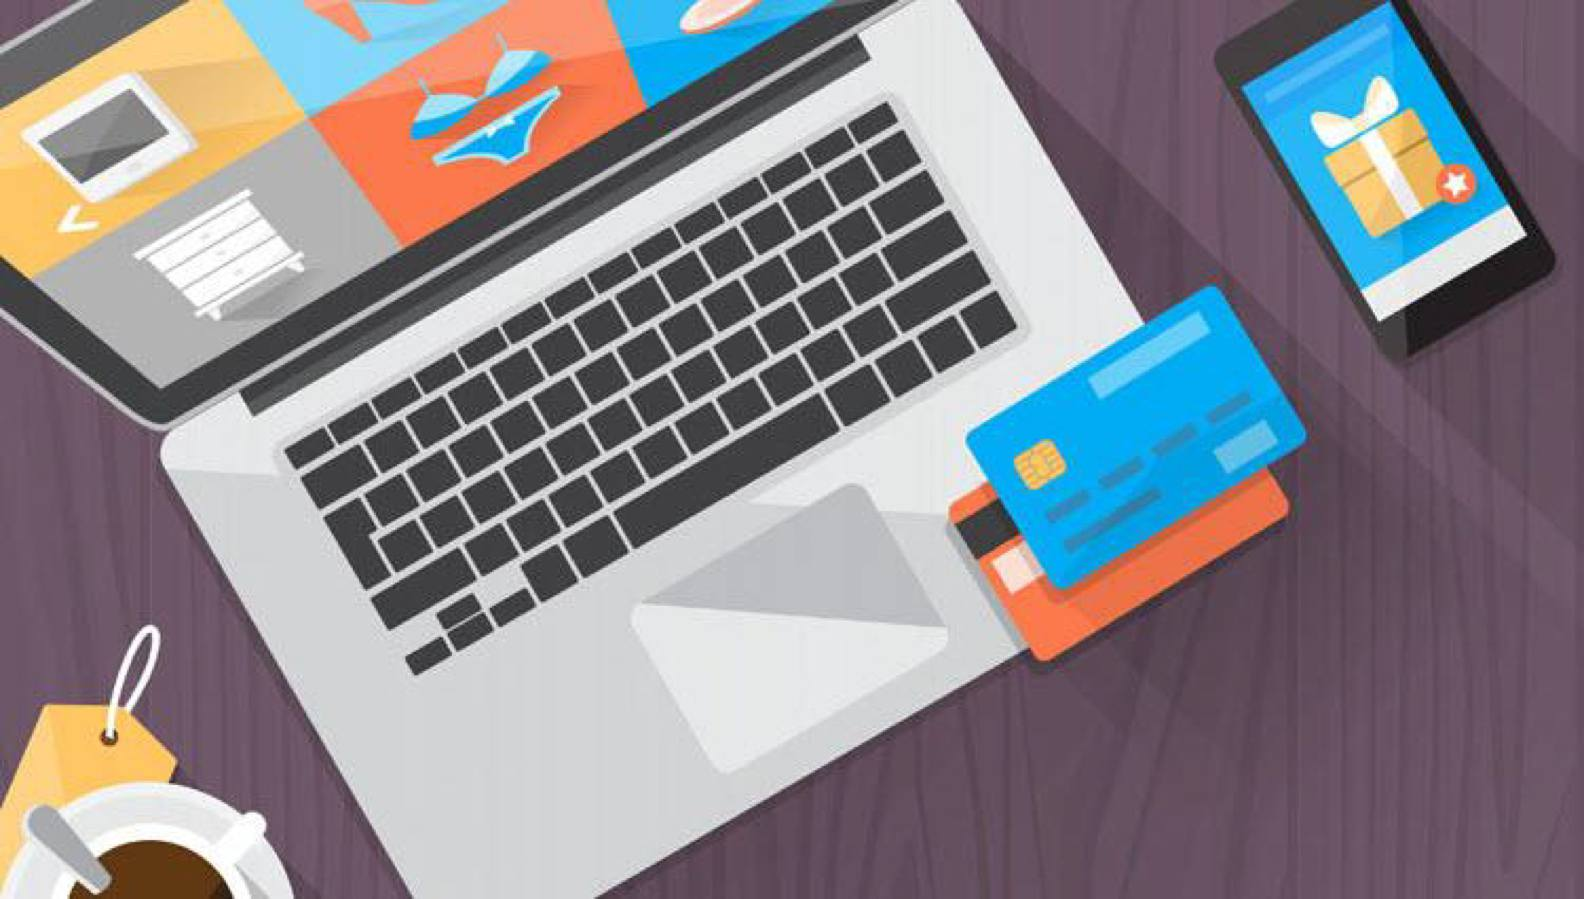 Ecommerce Fraud Soars As Consumers Increasingly Move to Online Shopping